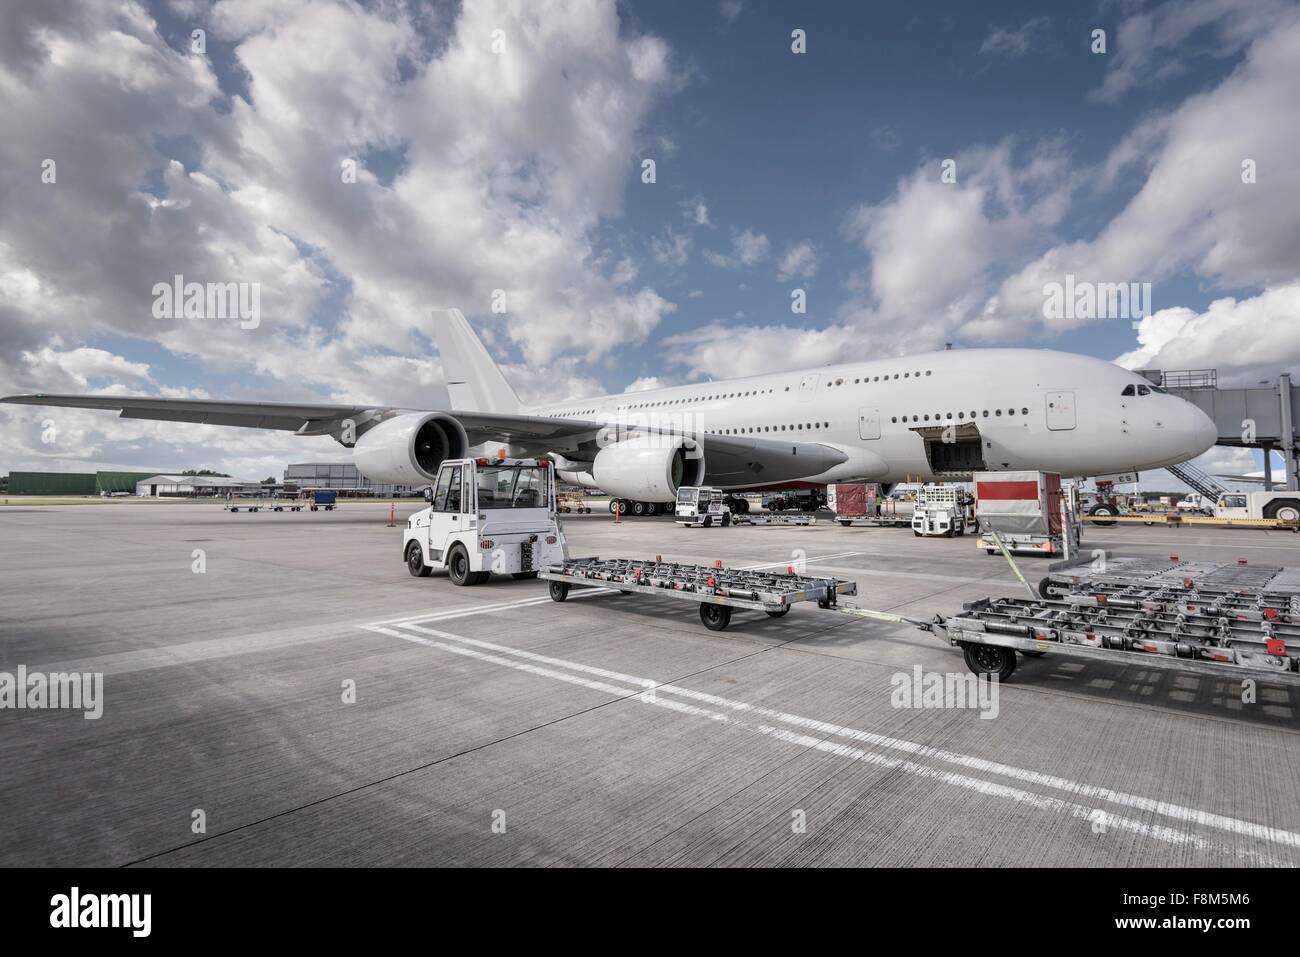 Ground crew loading A380 aircraft at airport - Stock Image